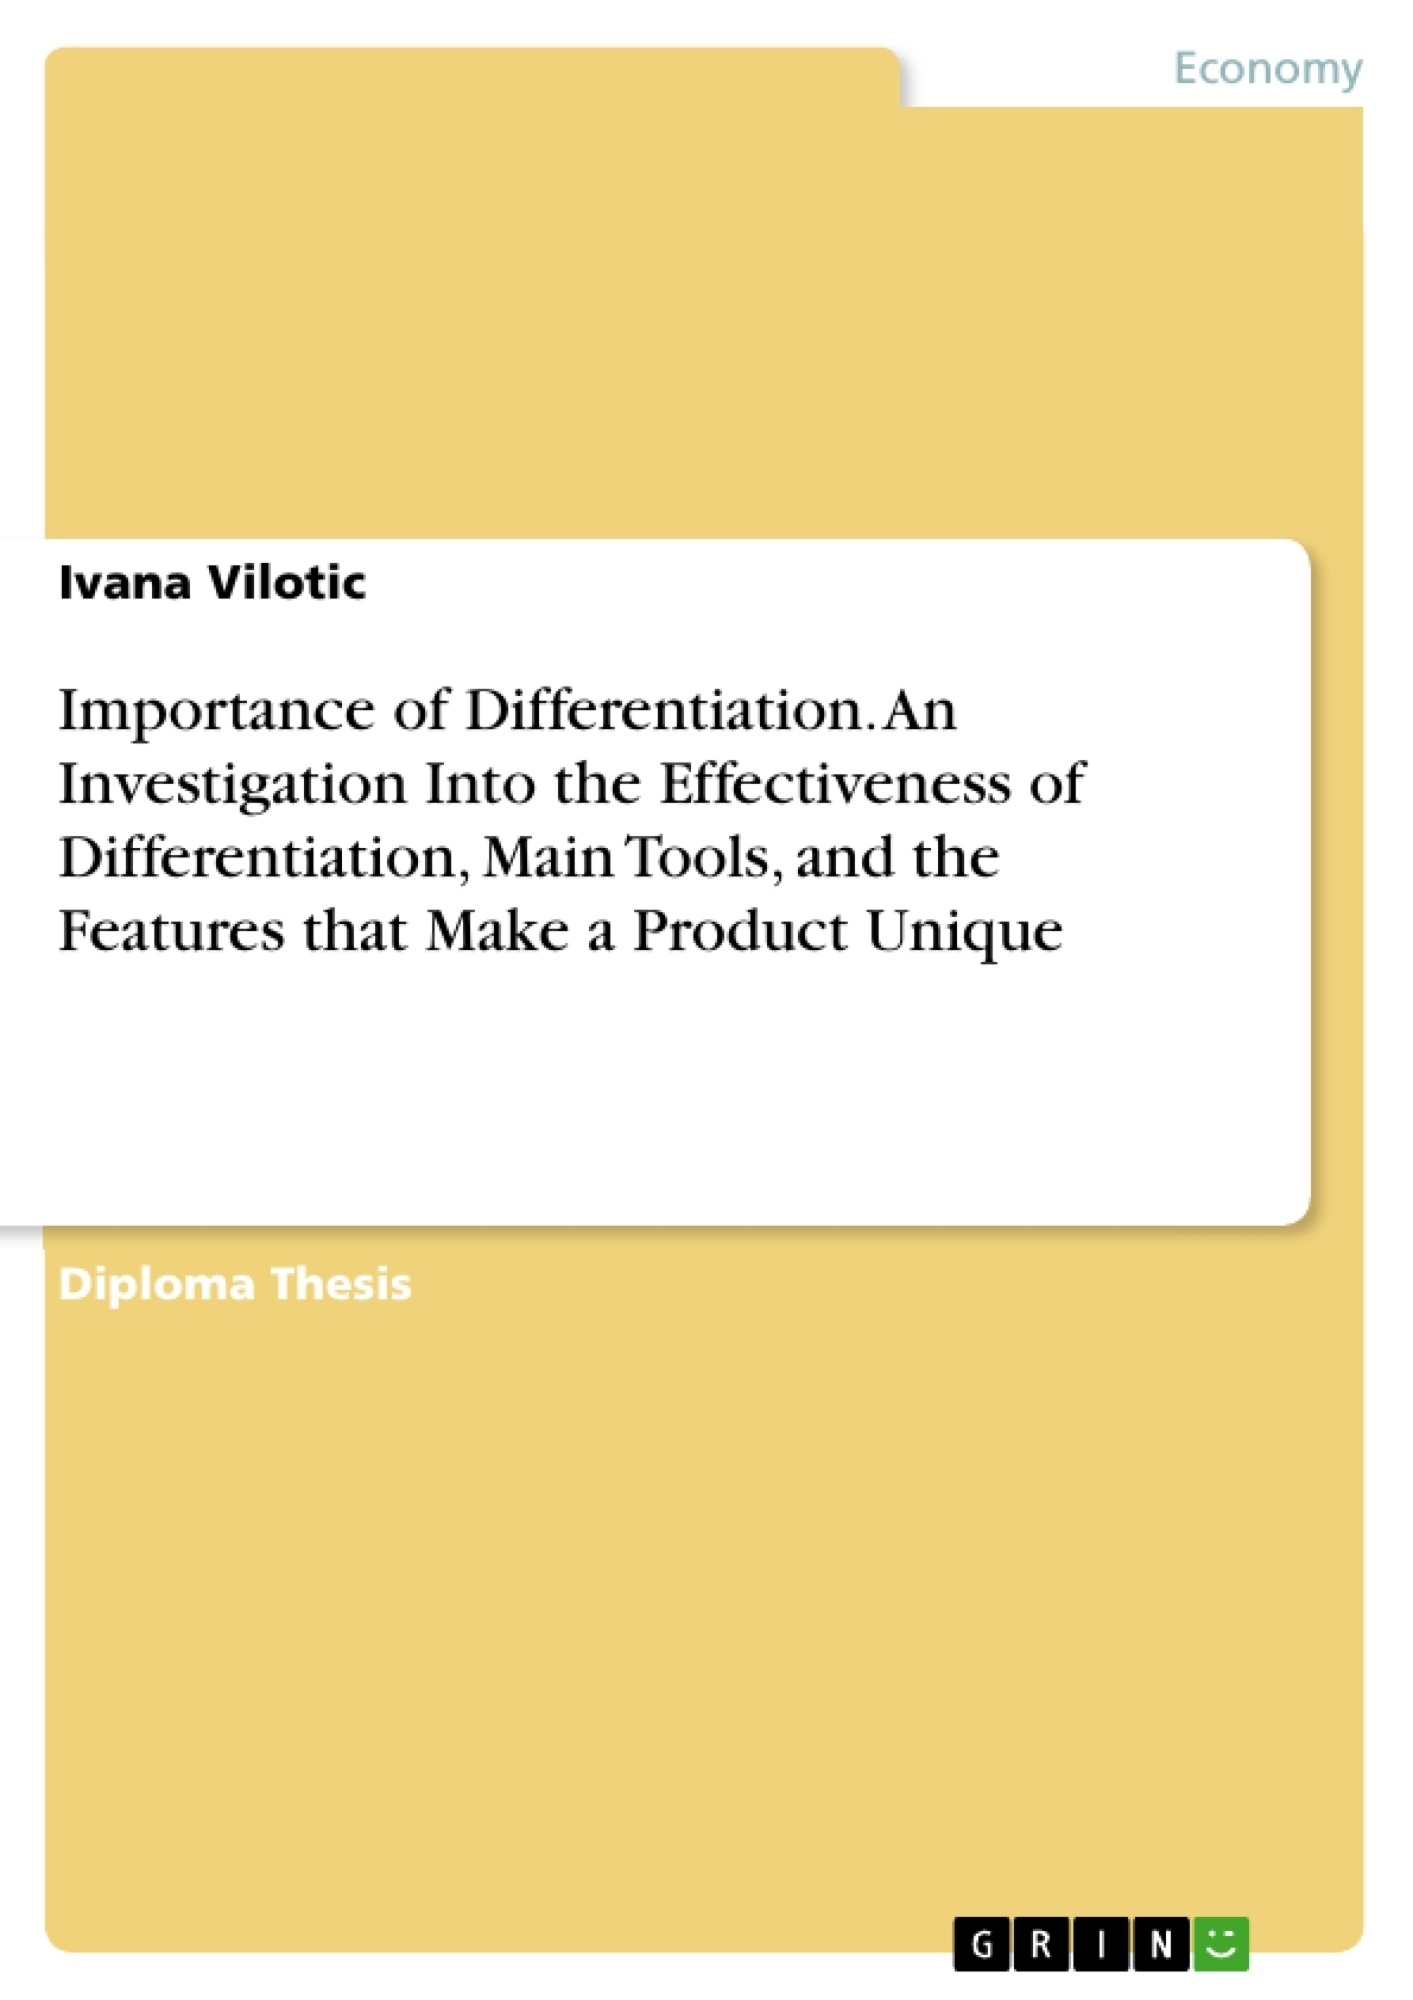 Title: Importance of Differentiation. An Investigation Into the Effectiveness of Differentiation, Main Tools, and the Features that Make a Product Unique